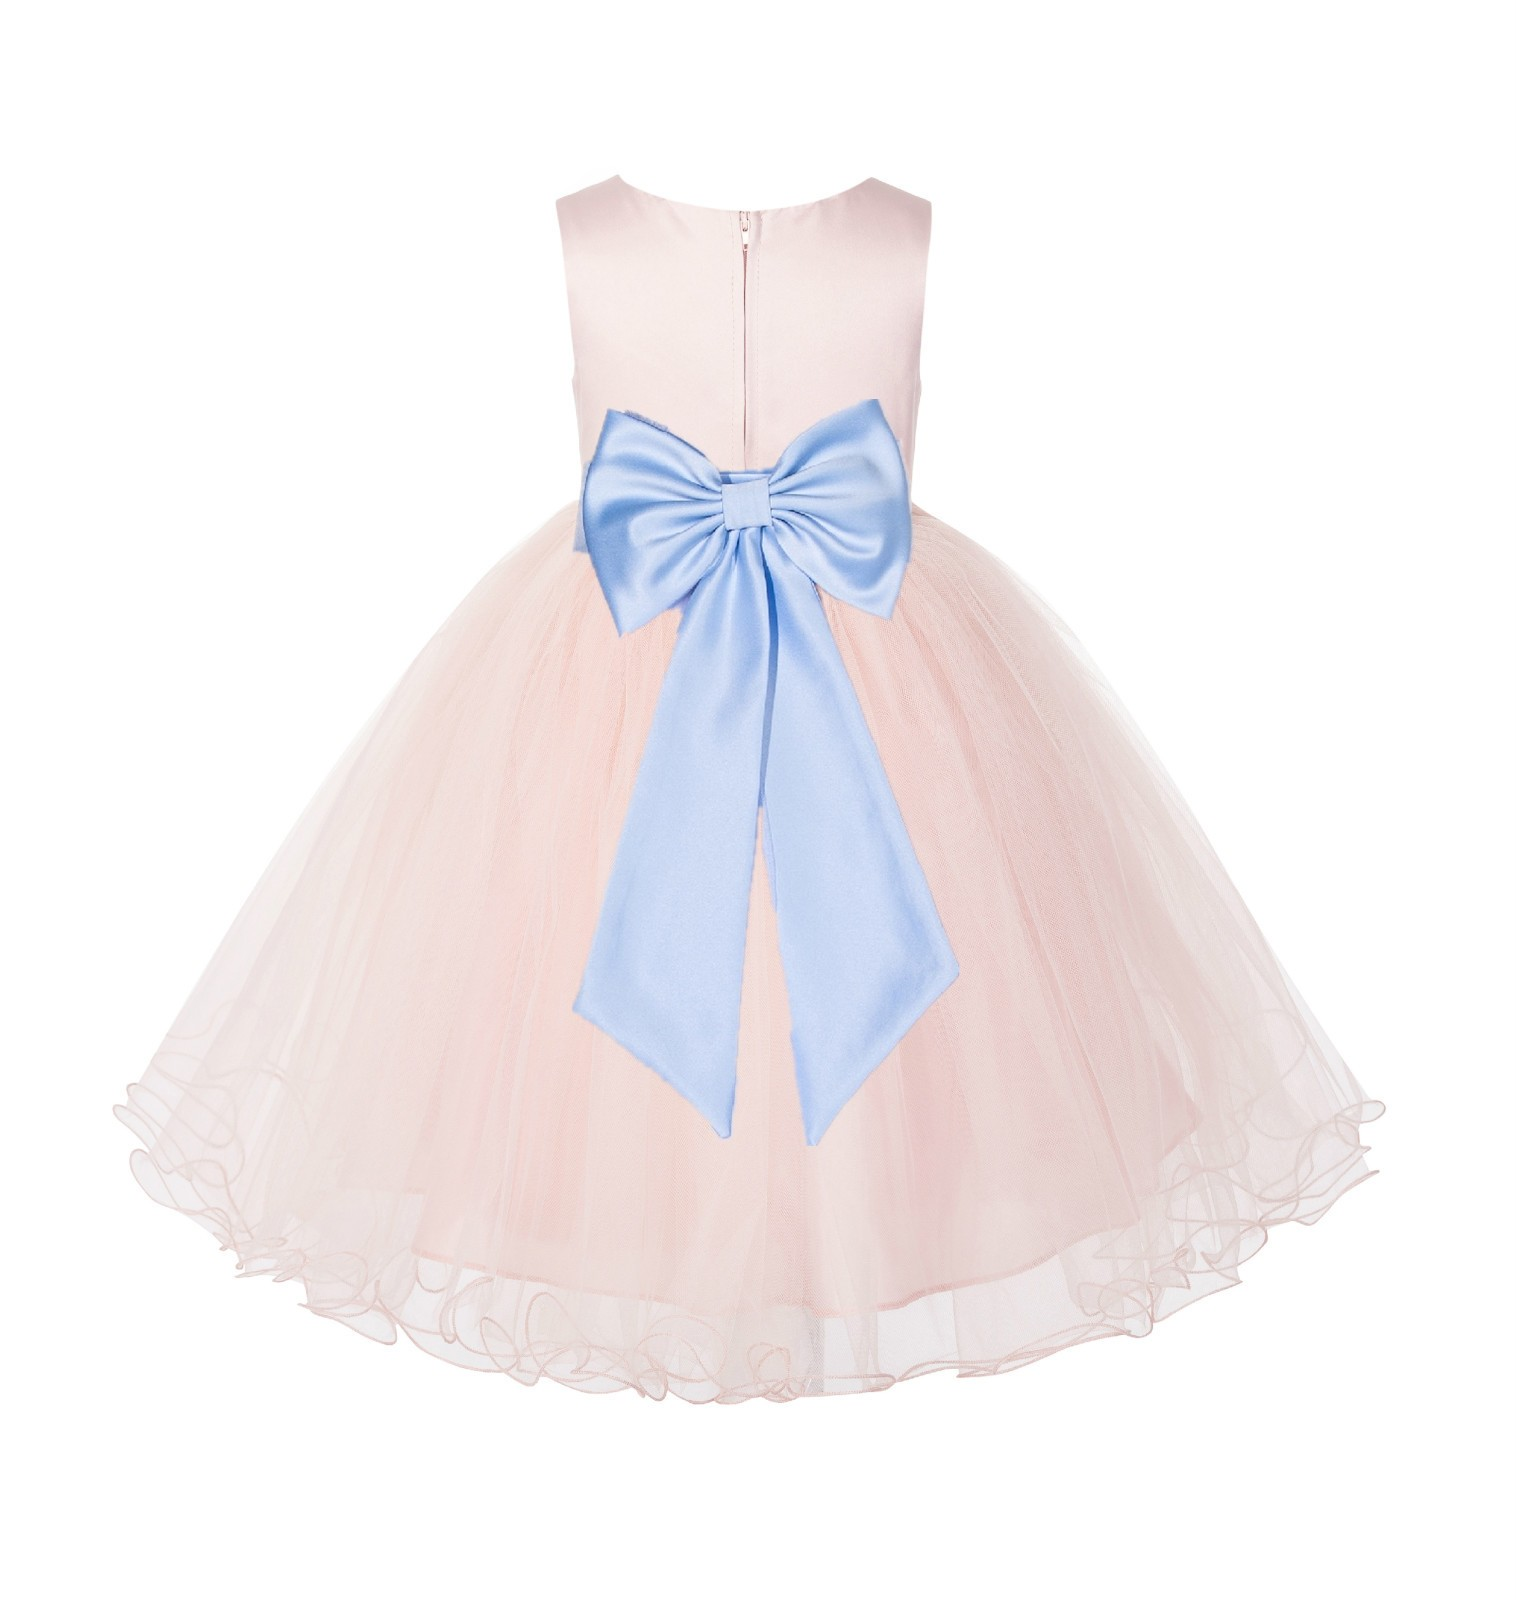 Blush PInk / Ice Blue Tulle Rattail Edge Flower Girl Dress Wedding Bridesmaid 829T